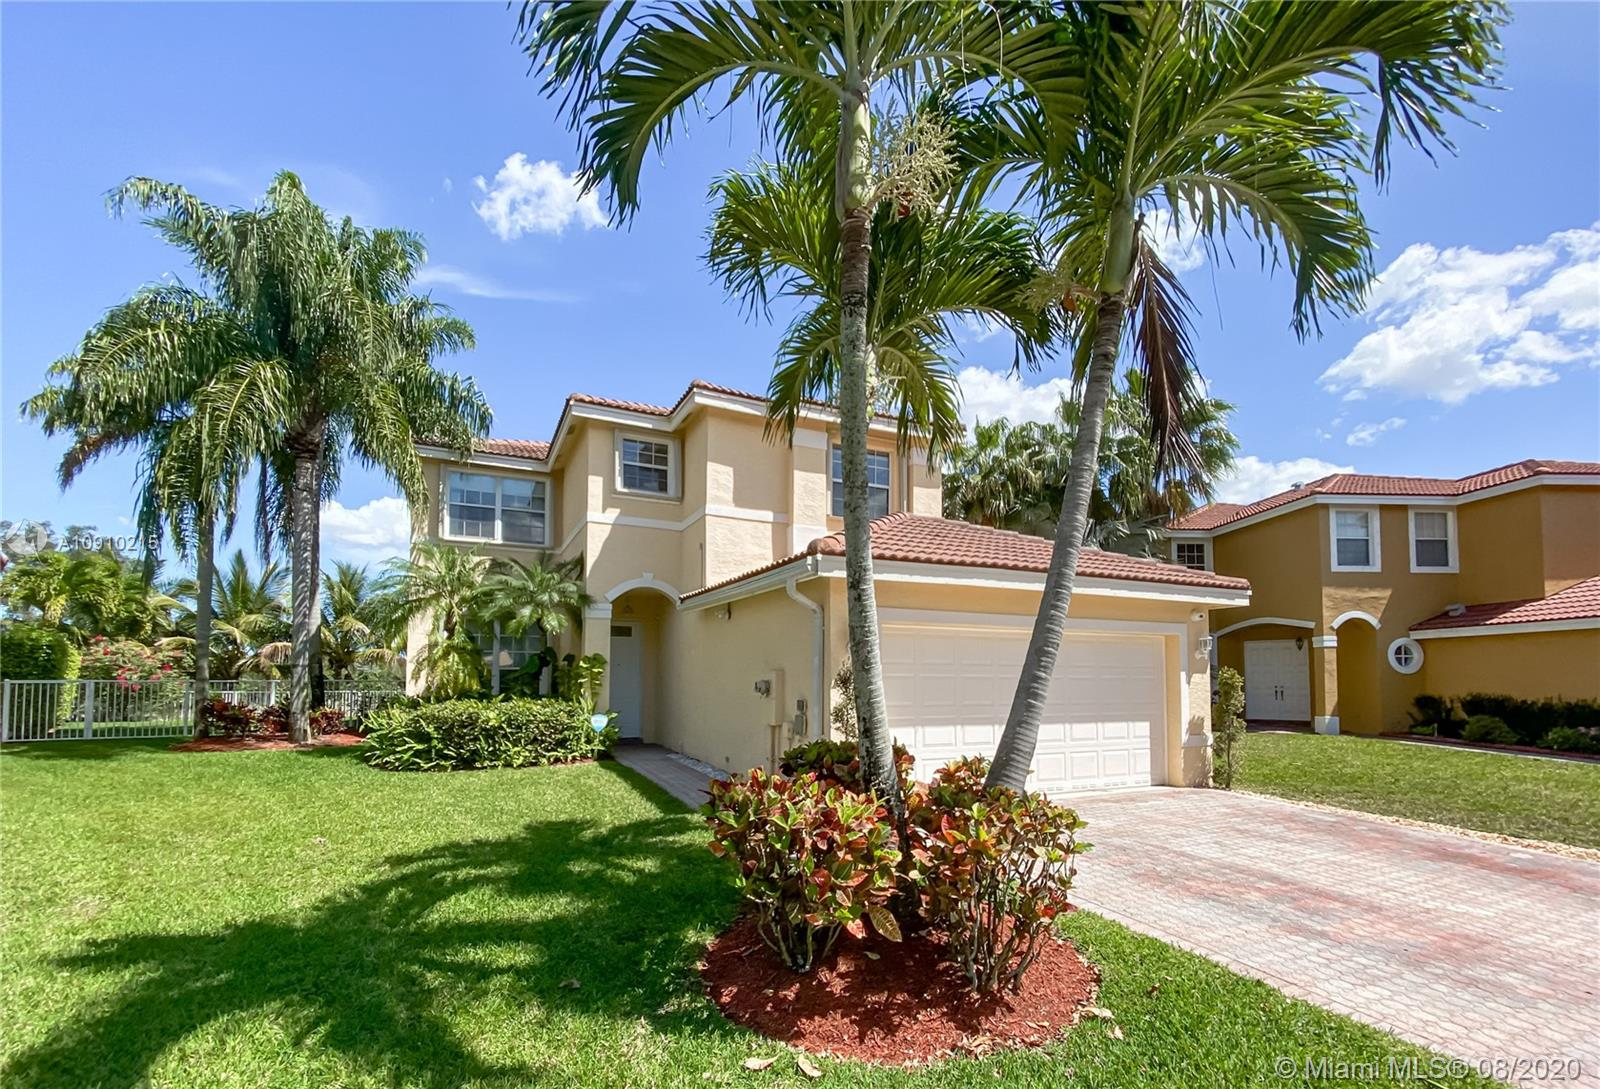 1801 SW 148th Way, Miramar FL 33027